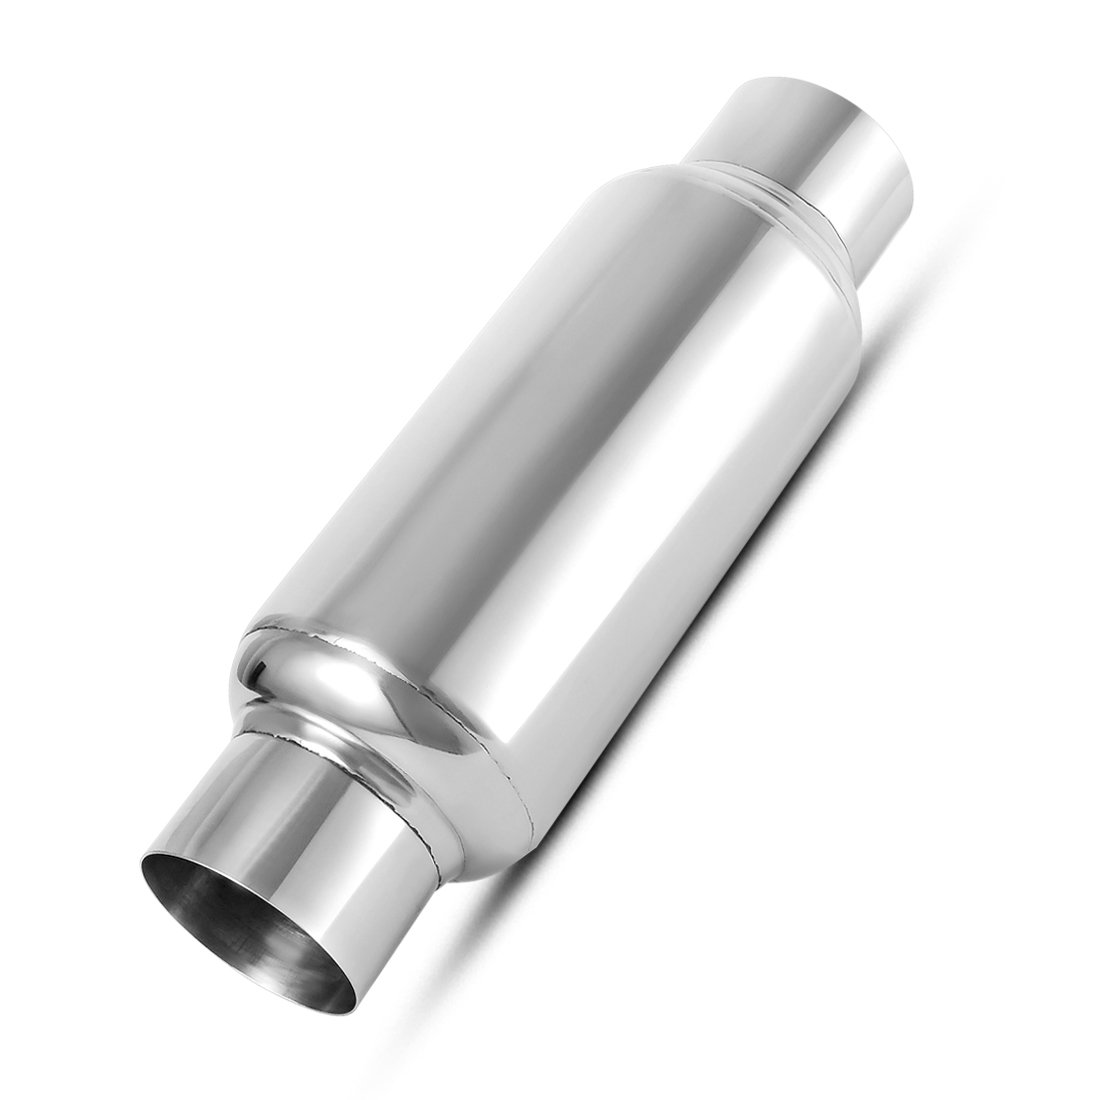 "AUTOSAVER88 Stainless Steel High Performance Race Welded 3 Exhaust Muffler for Truck 16 Overall Length Universal Muffler 3/"" Inlet /& 3/"" Outlet"